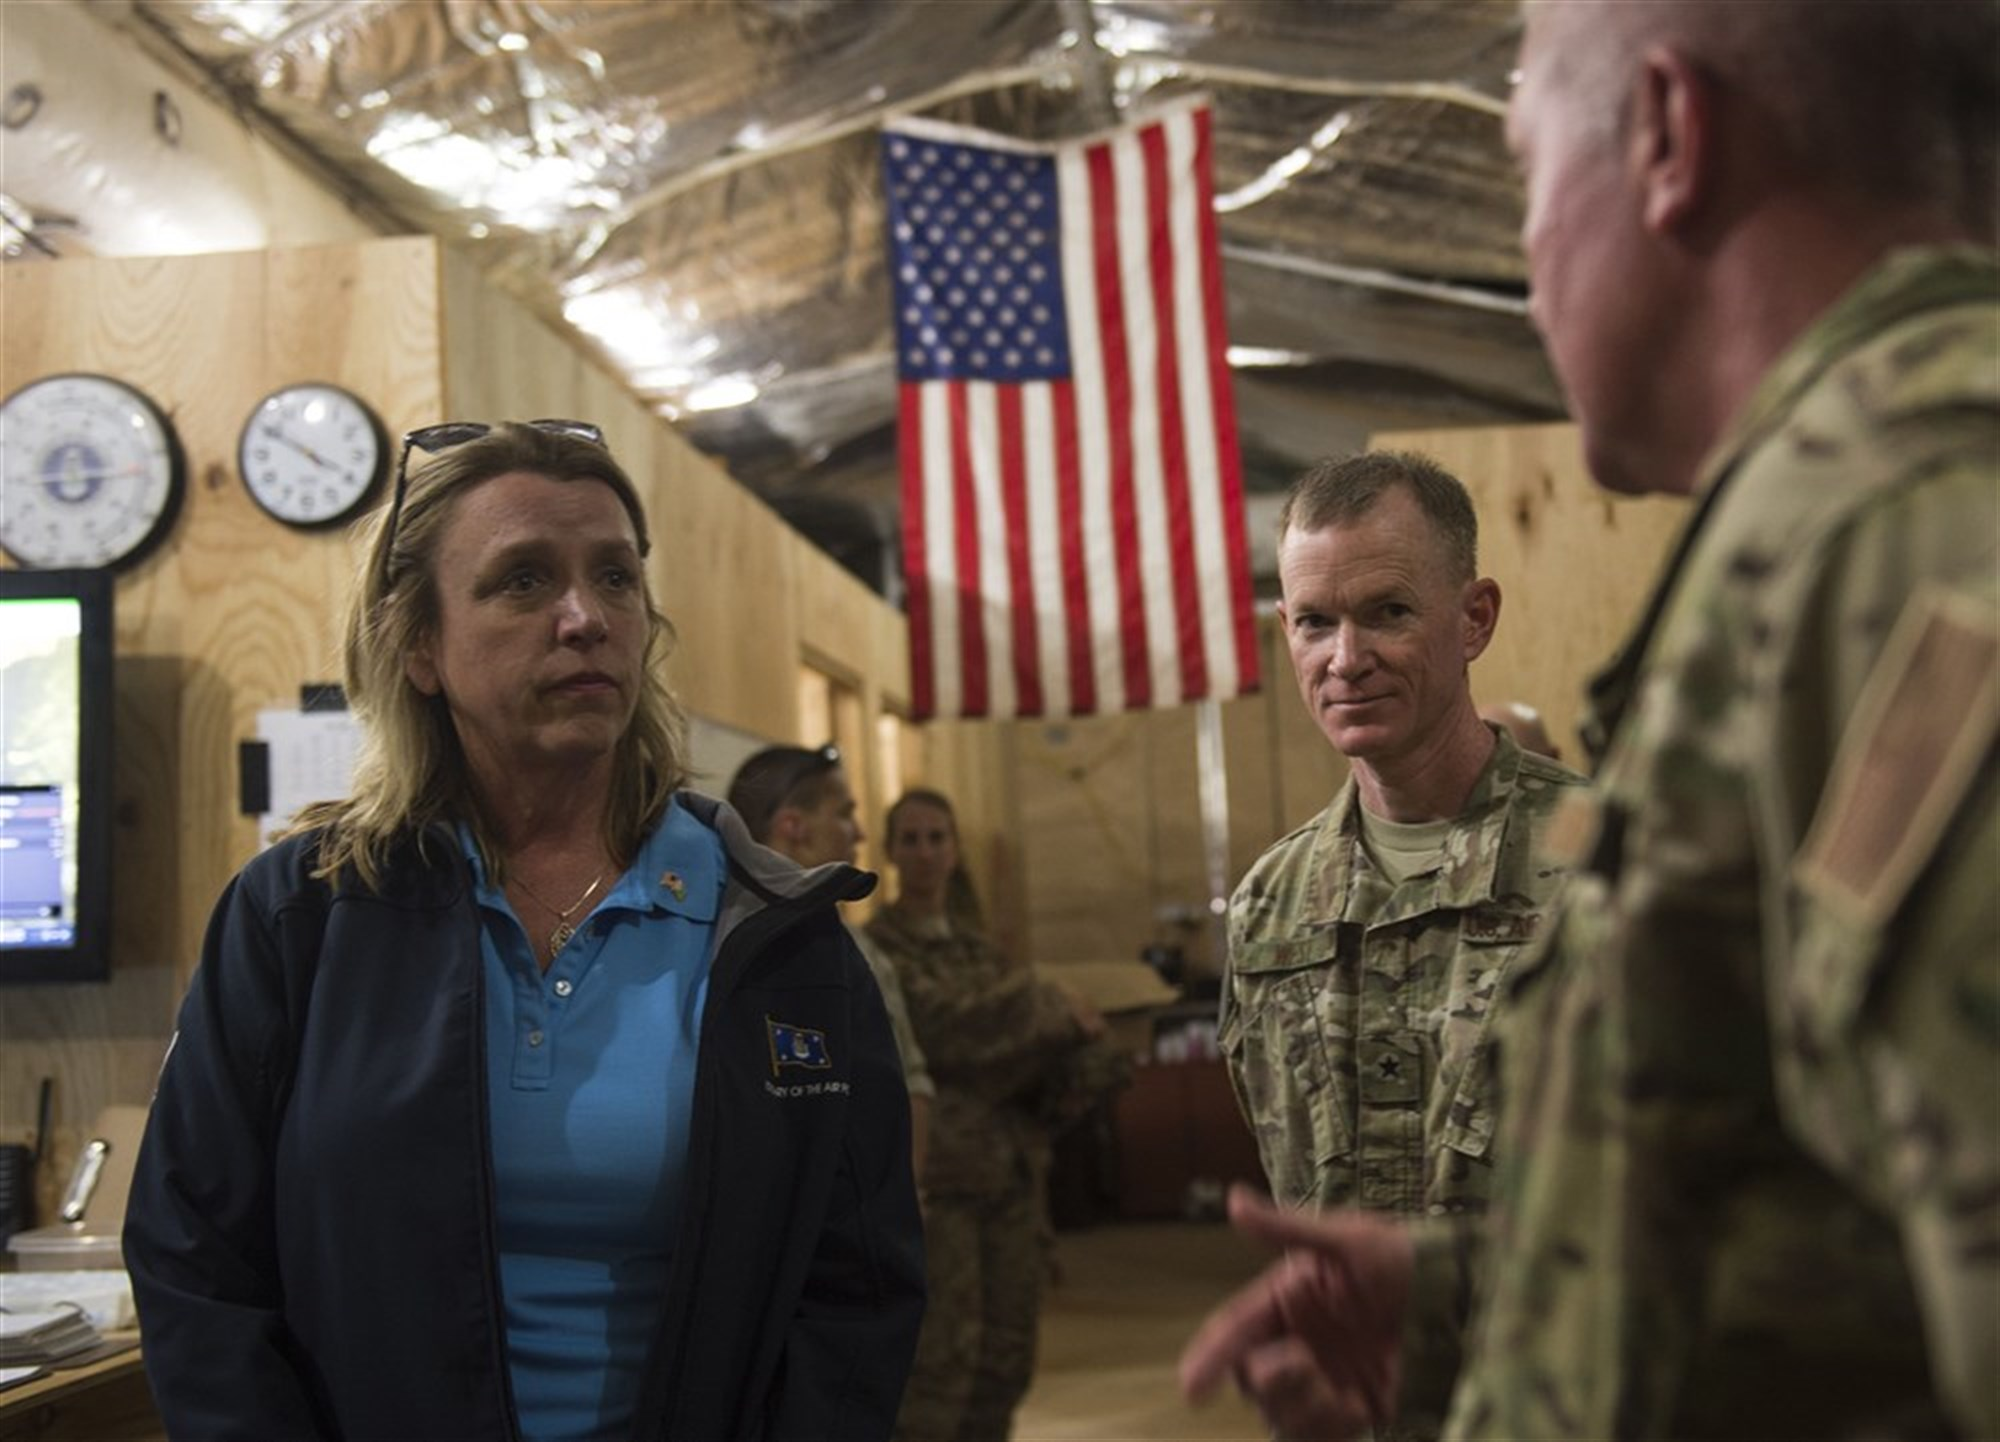 Secretary of the Air Force Deborah Lee James speaks with U.S. Air Force Col. Daniel Duffy, 449th Air Expeditionary Group commander, at Chebelley Airfield, Djibouti, Nov. 12, 2015. James met with many Airmen who work to sustain the mission in remote parts of the country. (U.S. Air Force photo by Senior Airman Peter Thompson)